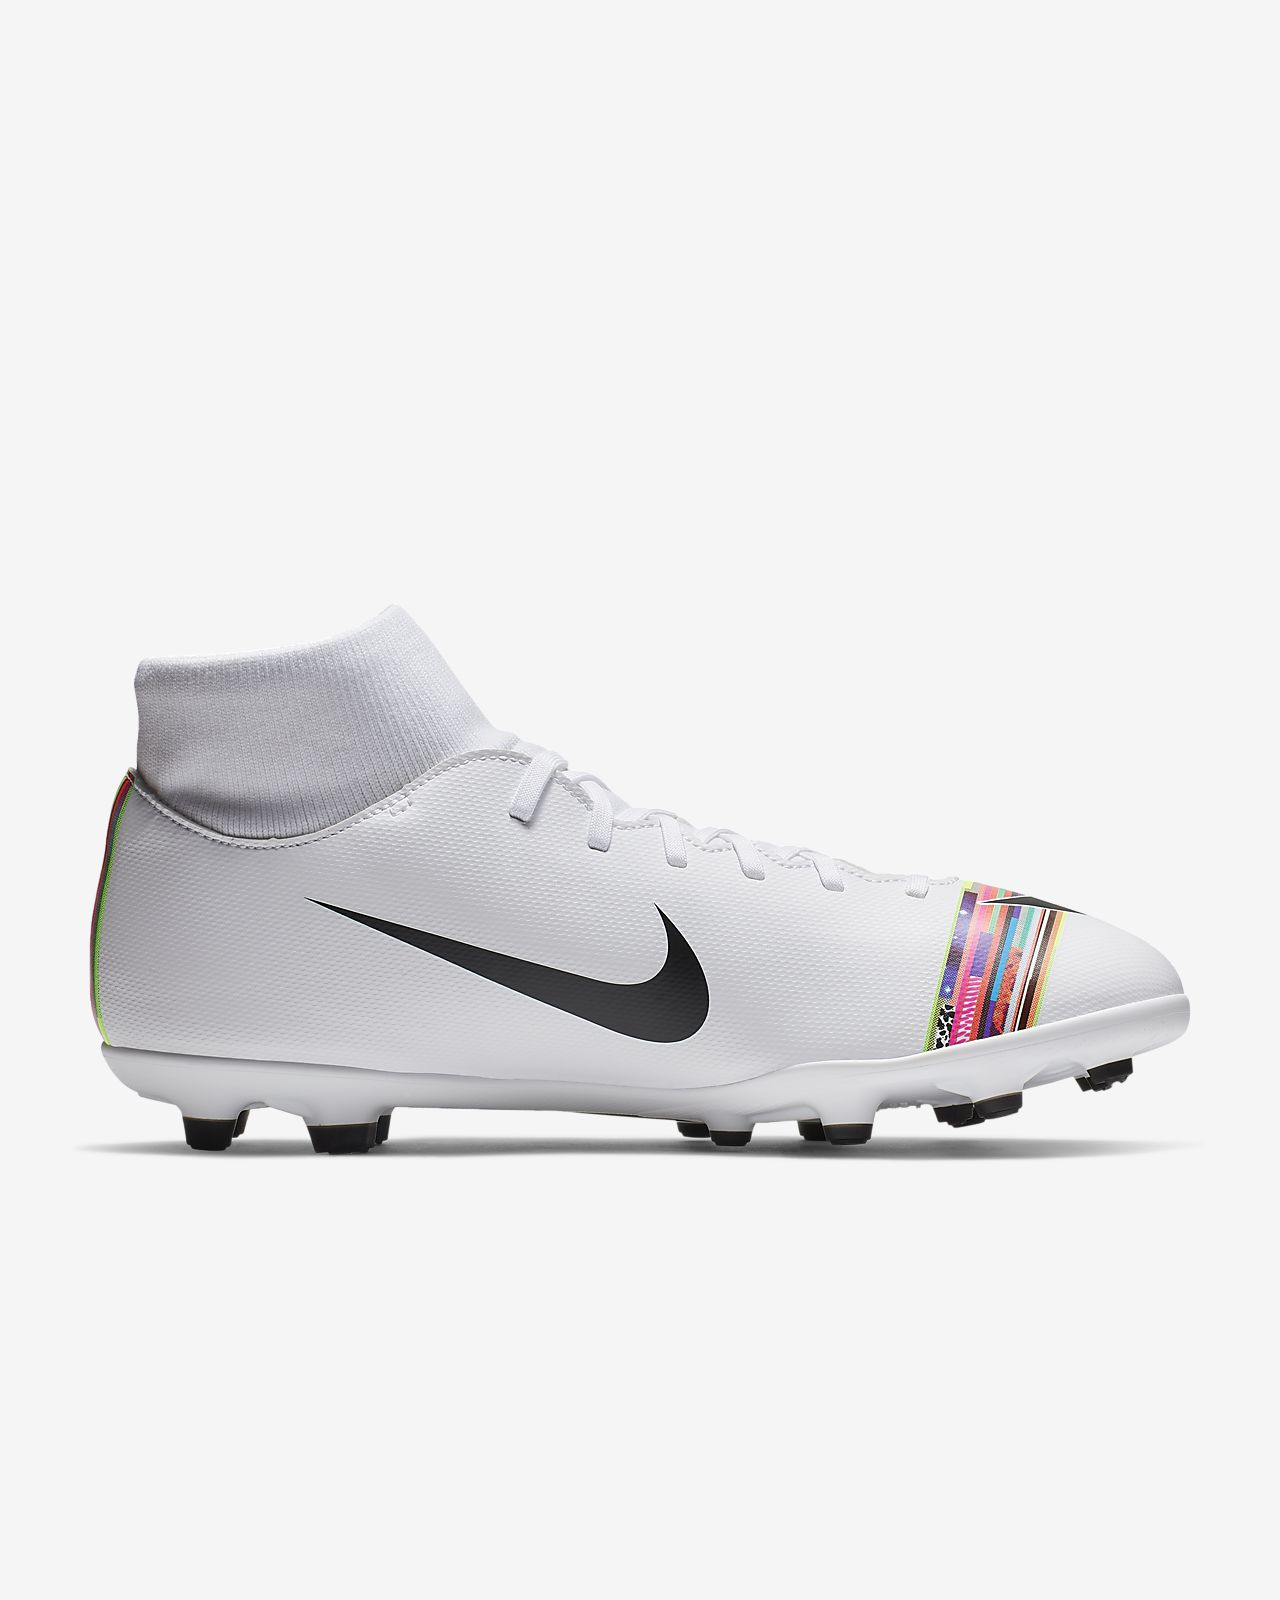 089894d1483 Nike Superfly 6 Club MG Multi-Ground Football Boot. Nike.com HU